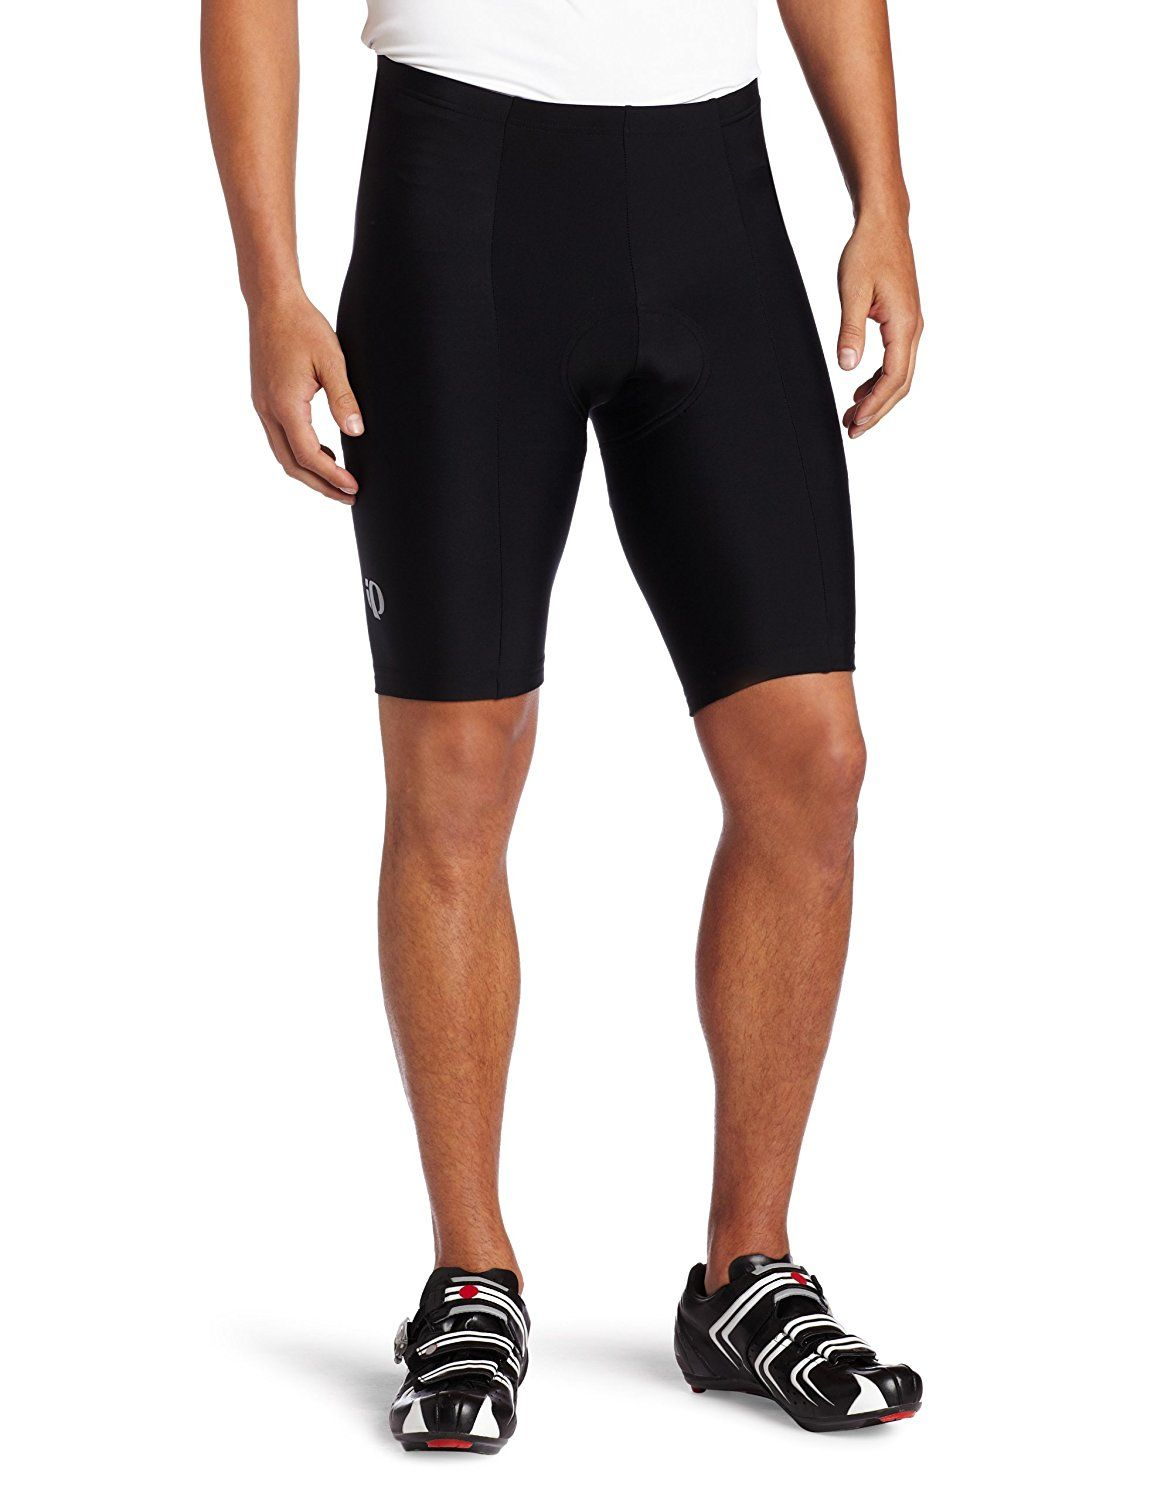 Pin By Bestforcycling On Men S Bike Pants Best Cycling Shorts